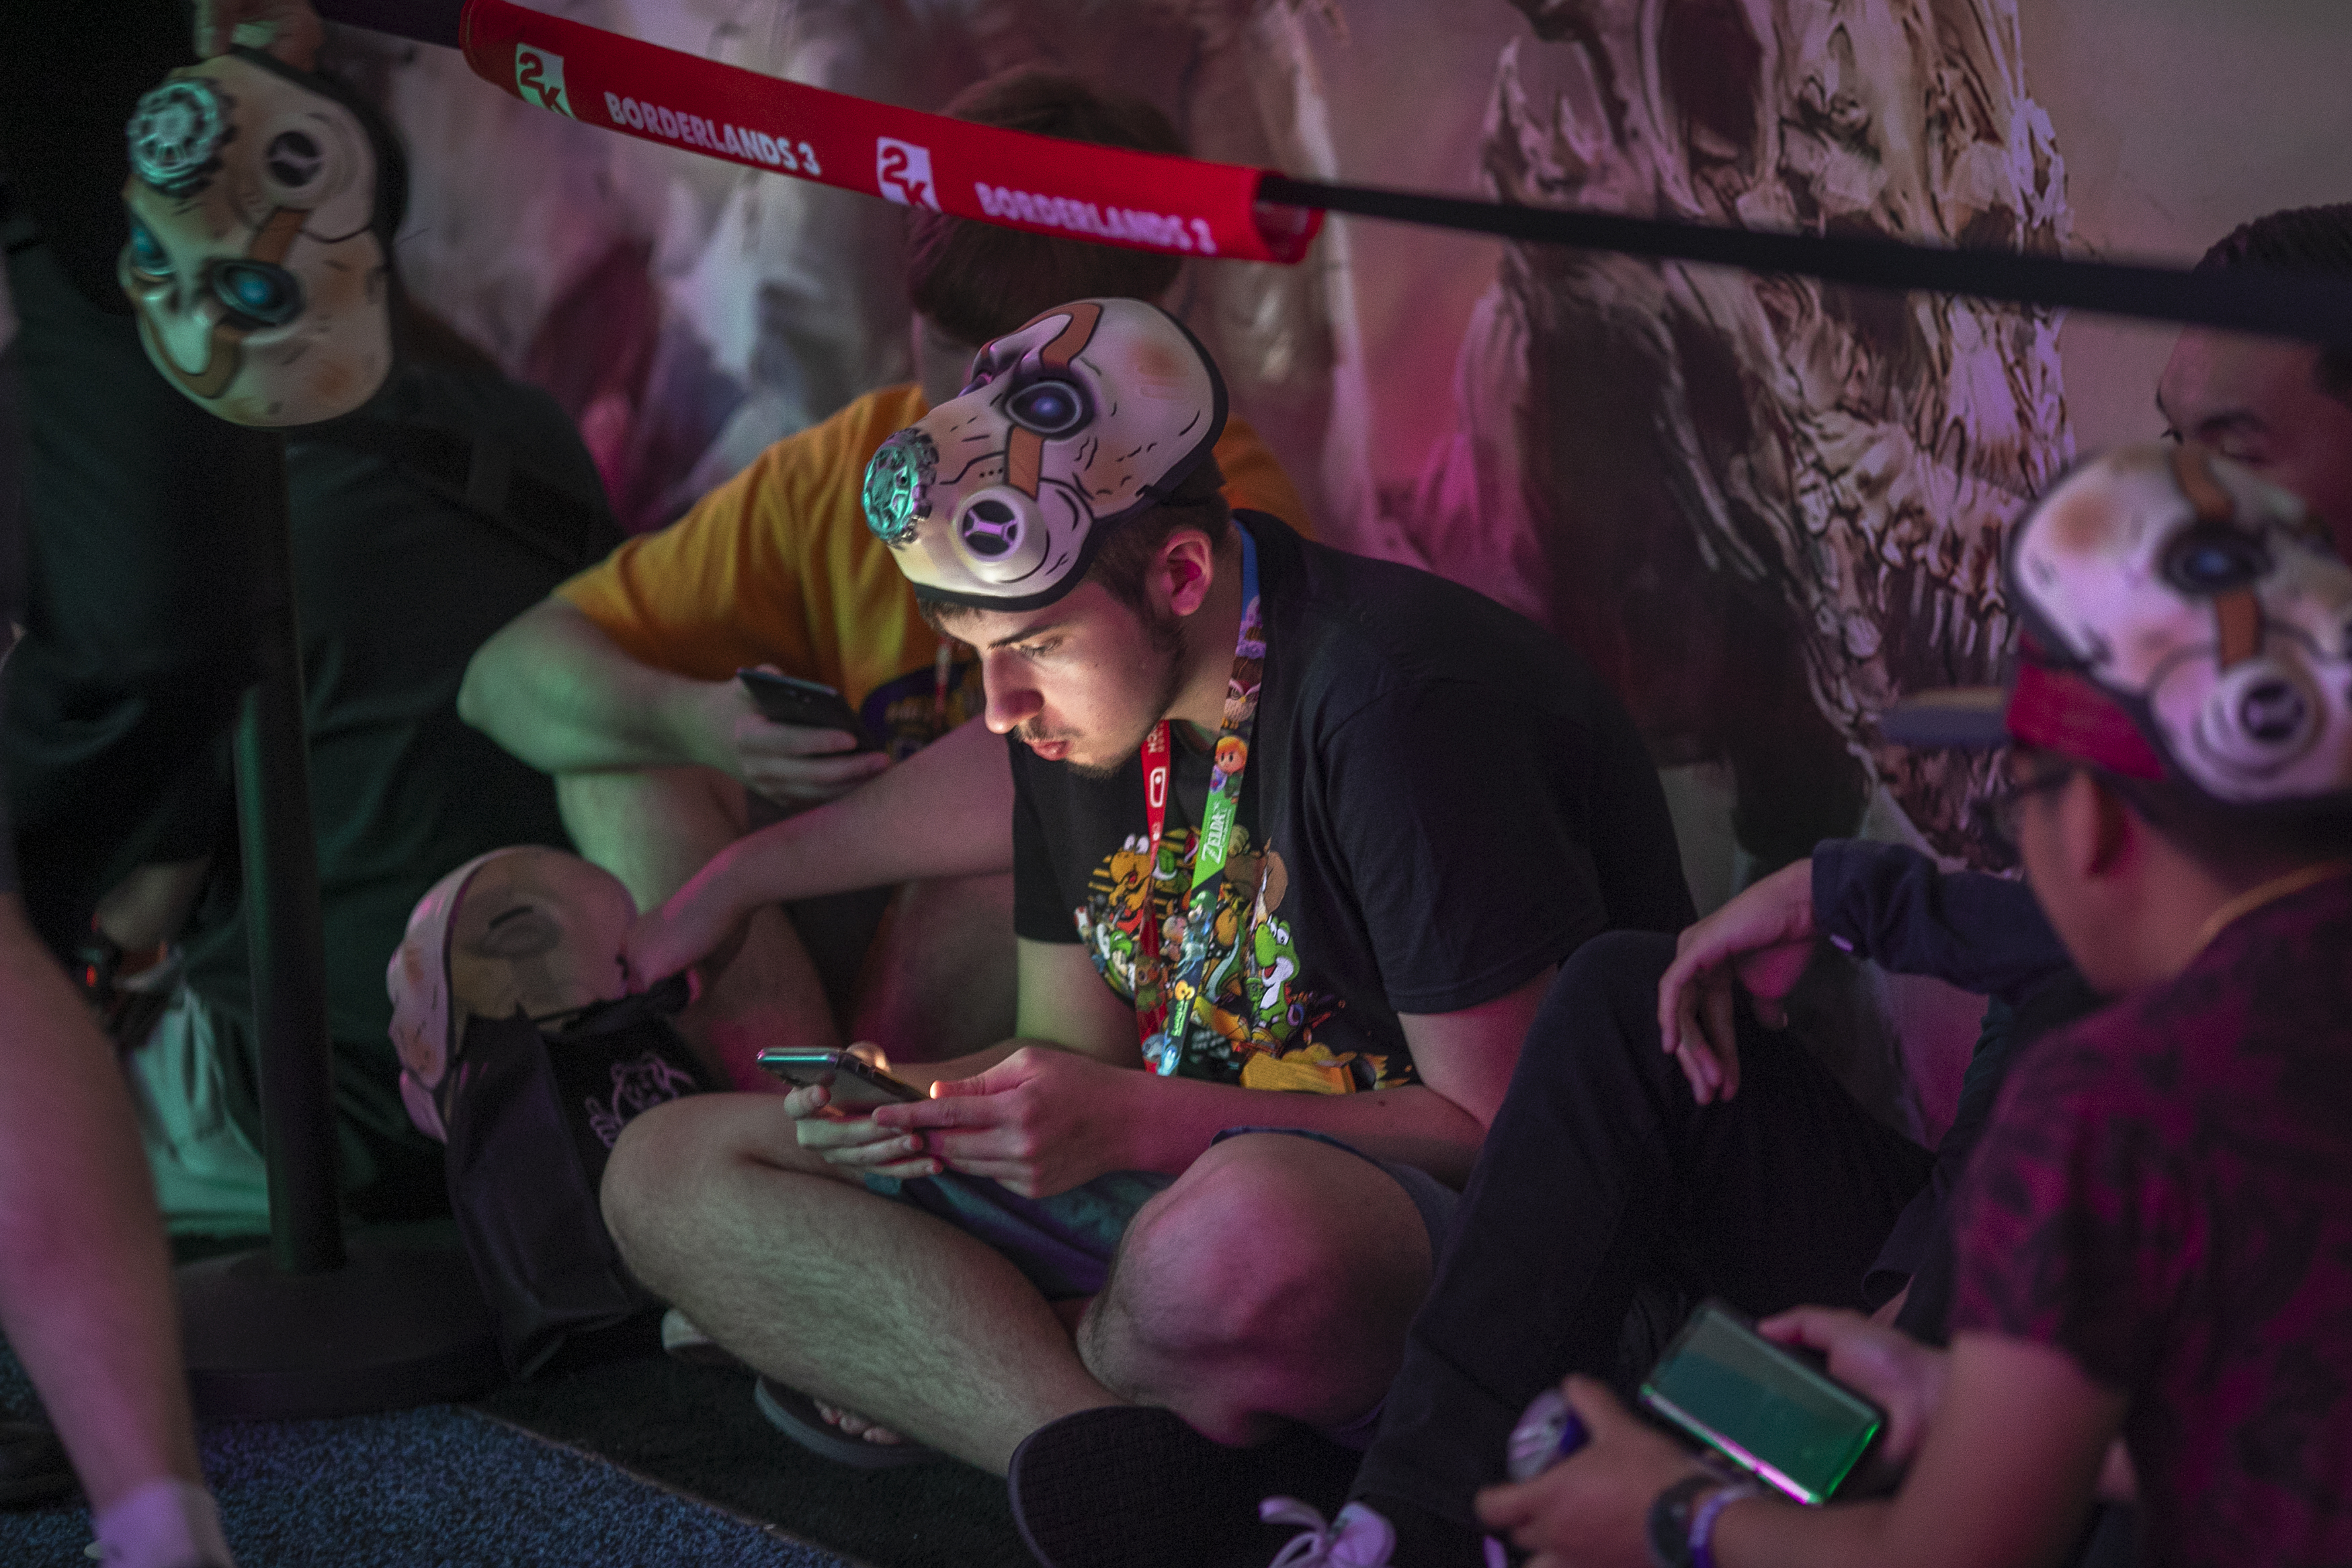 Report: Leaked E3 plans propose fan-focused event with 10,000 more attendees